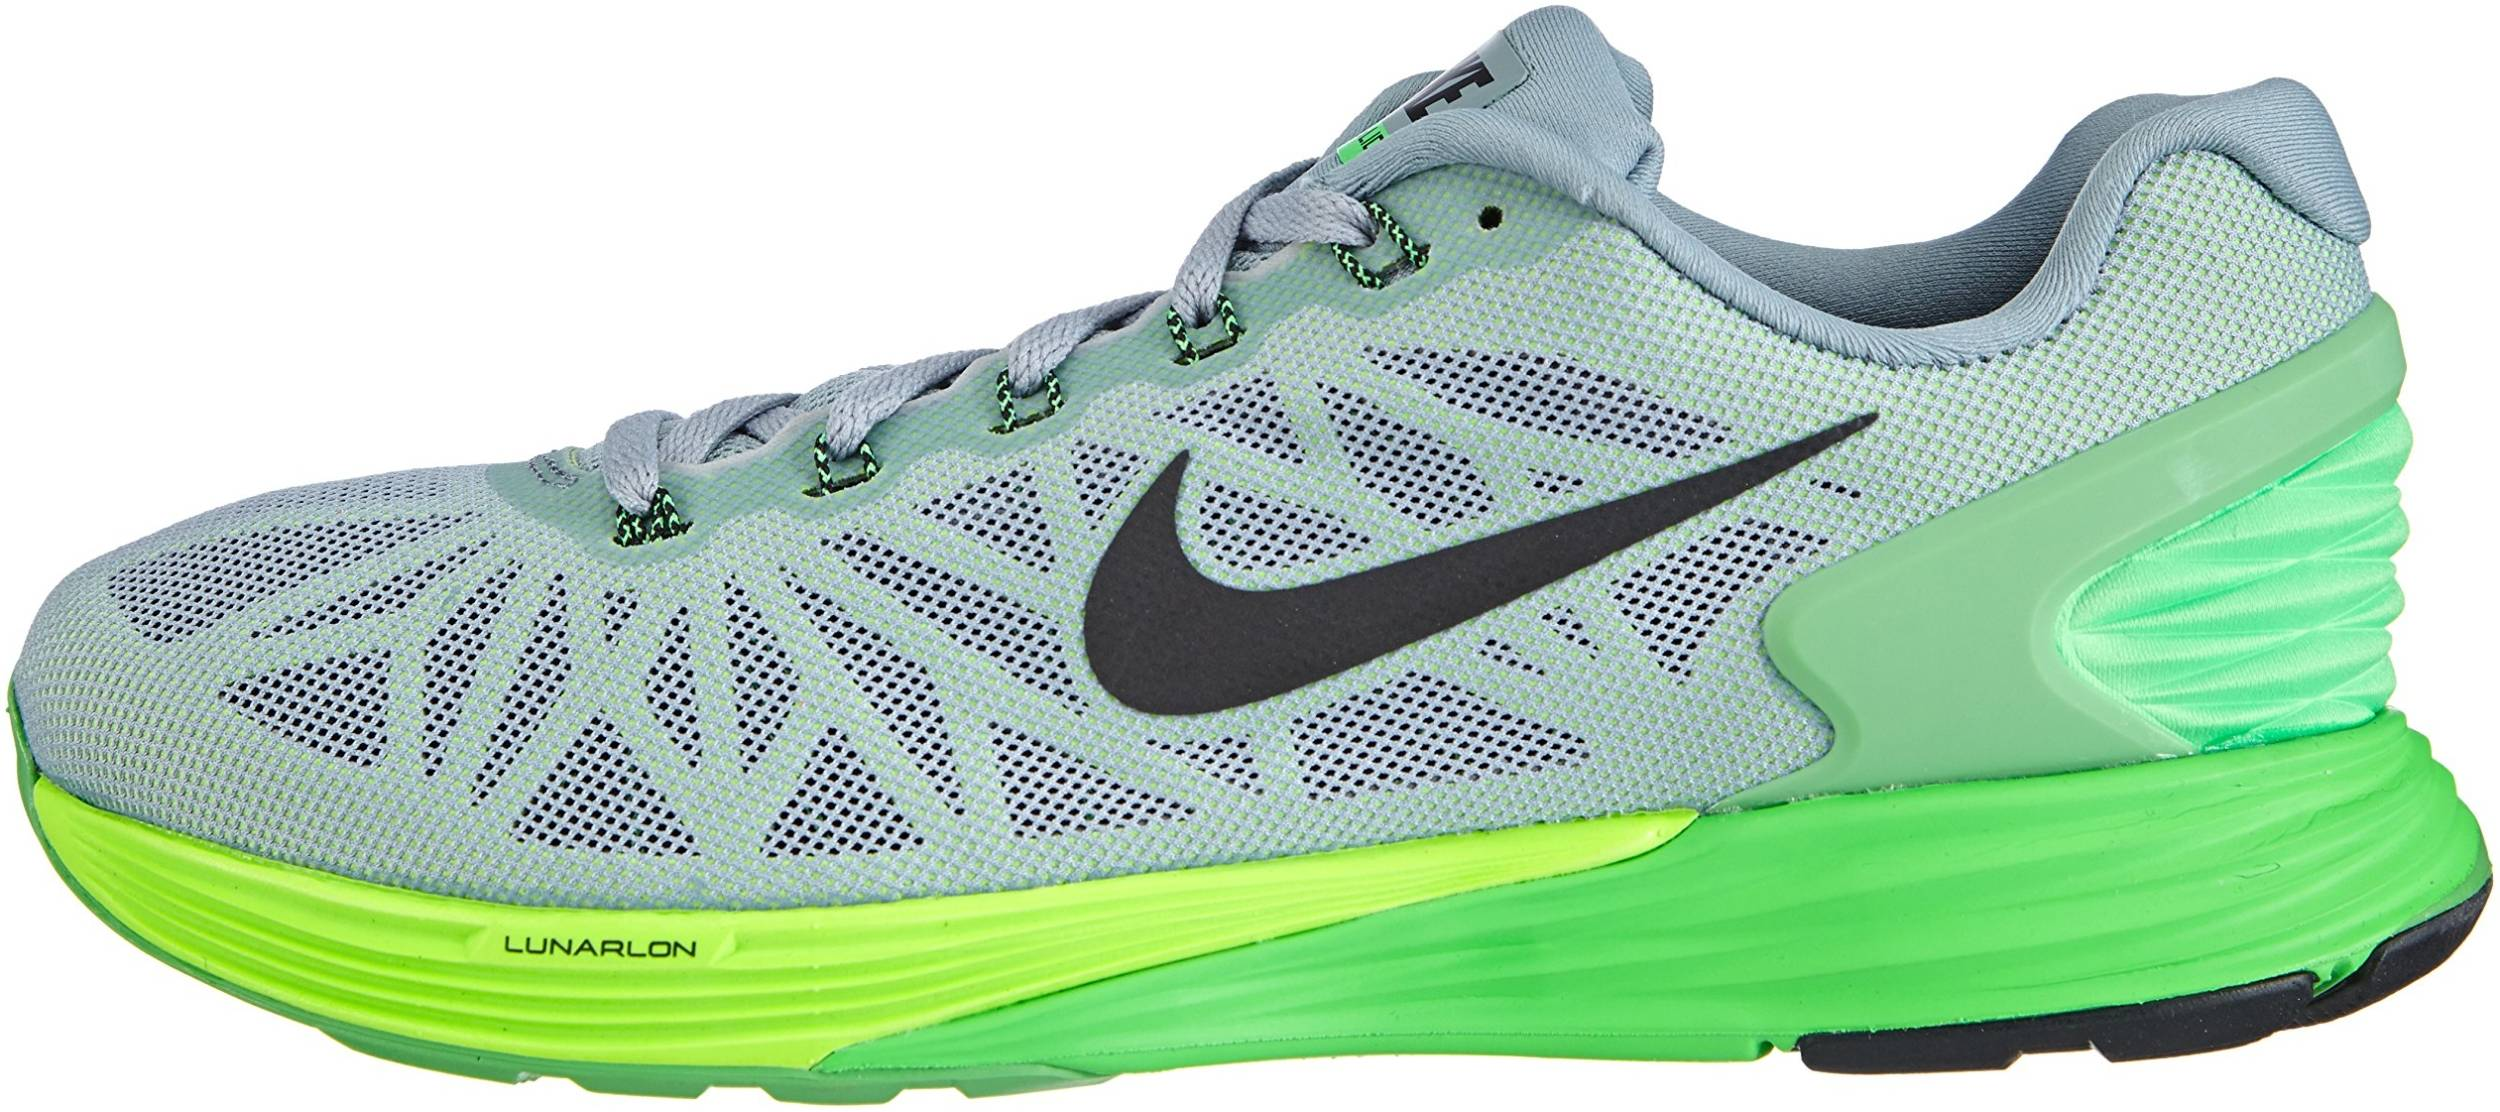 Only $110 + Review of Nike LunarGlide 6